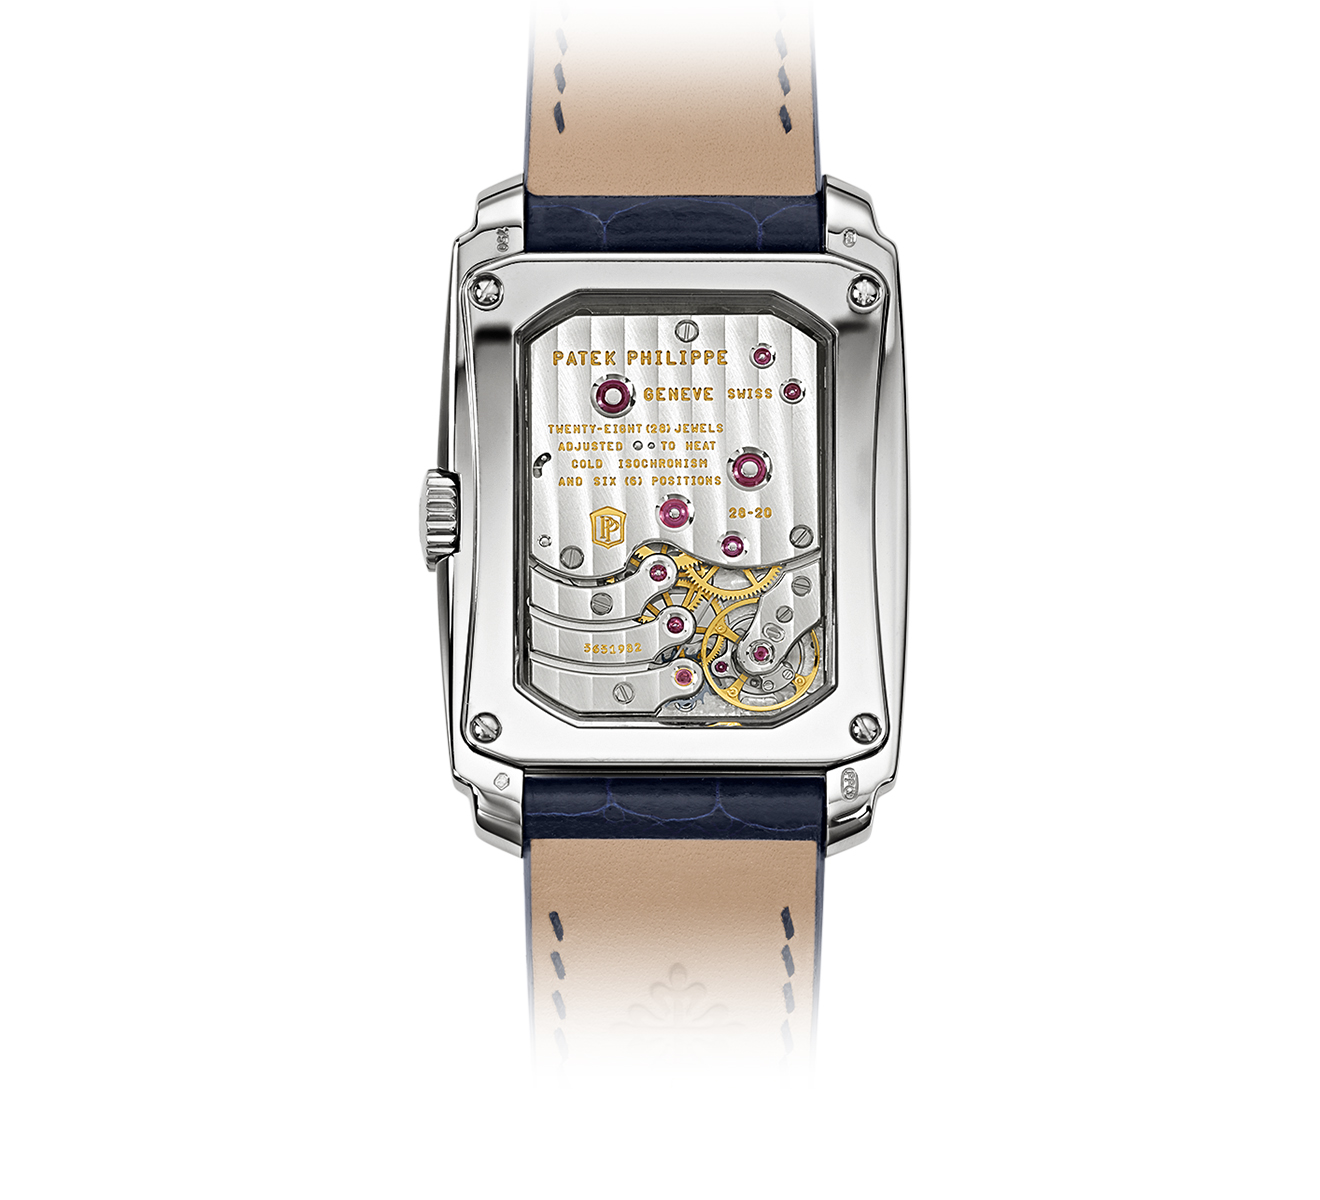 Часы 8 Days, Day & Date Indication PATEK PHILIPPE Gondolo 5200 G-001 - фото 3 – Mercury